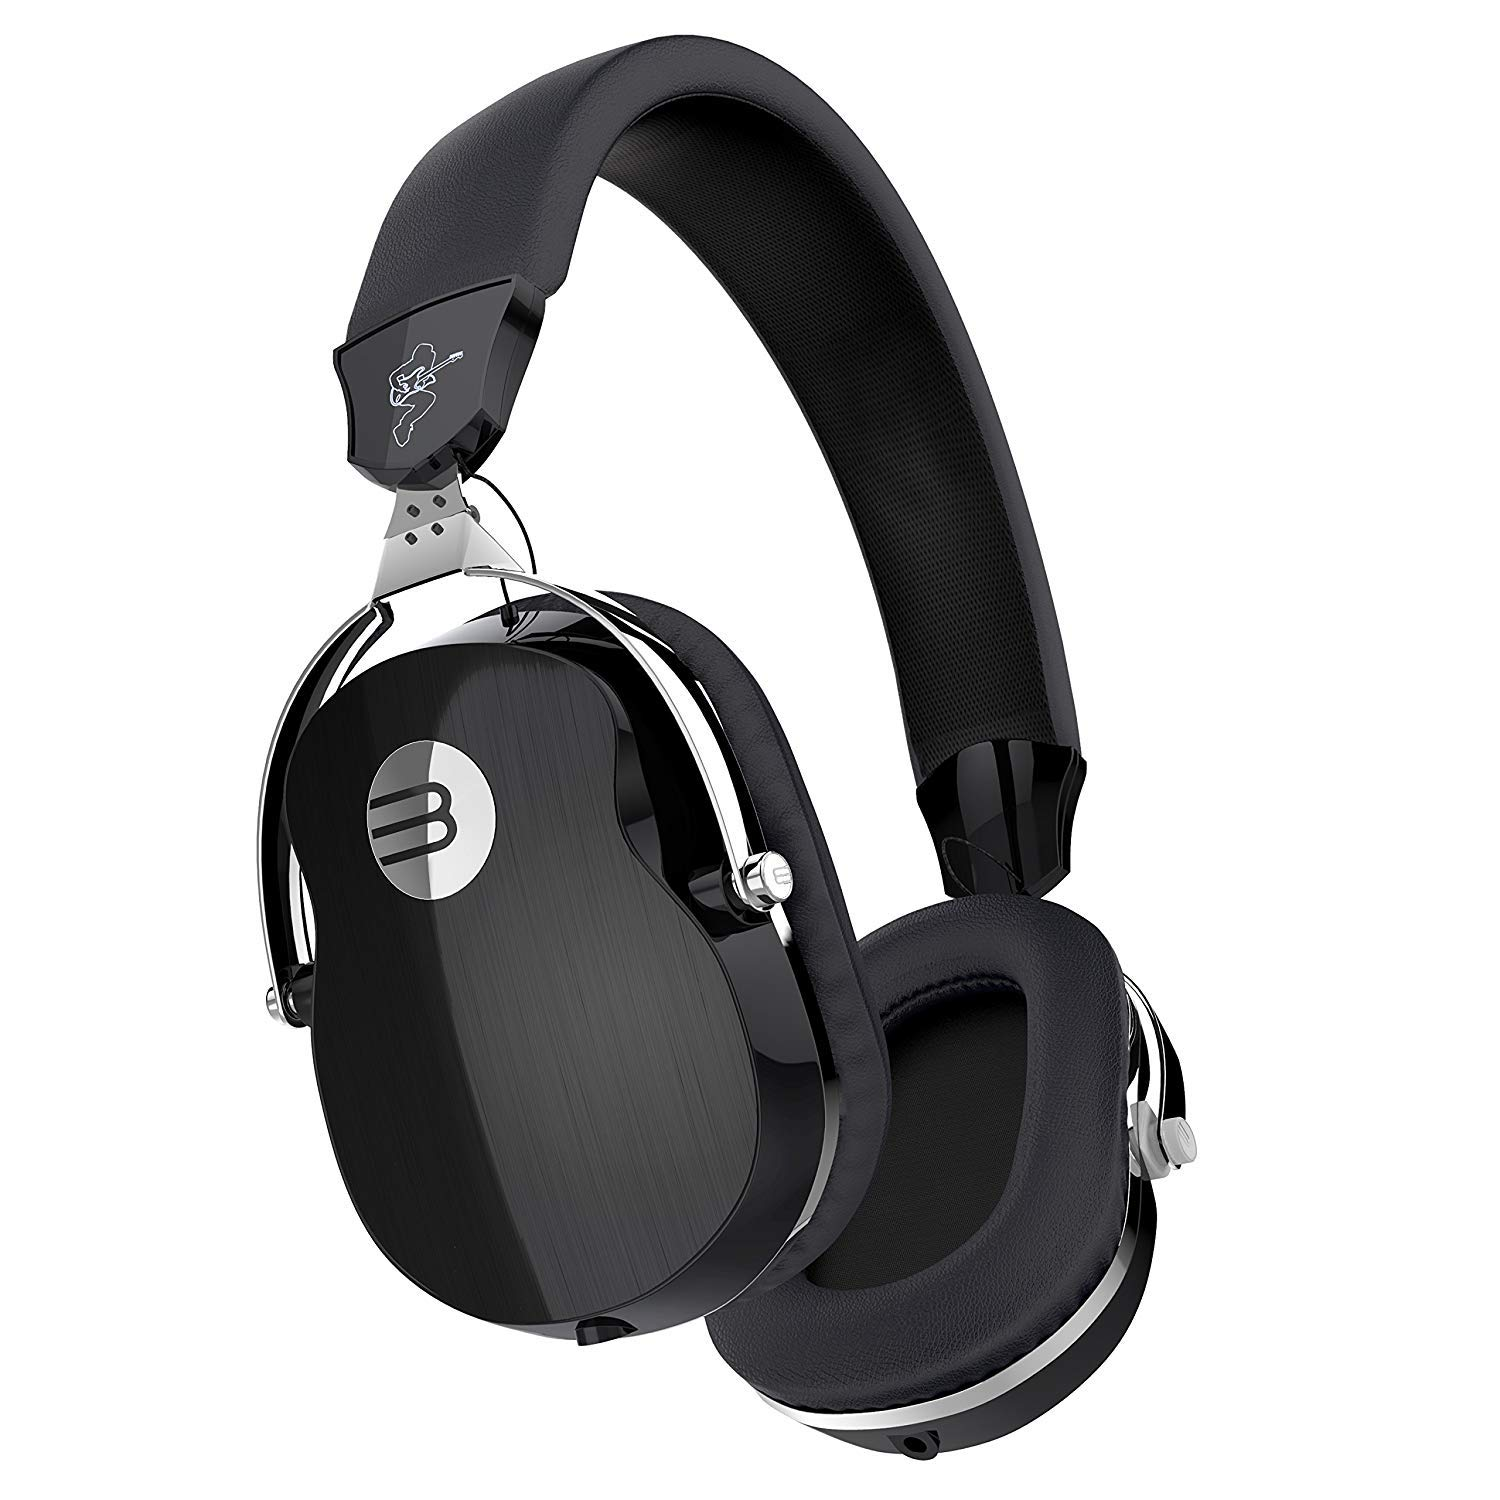 Vomercy Over-Ear Music Headset HiFi Stereo Headphones Clear Bass Built-in Mic Foldable Rotatable Black